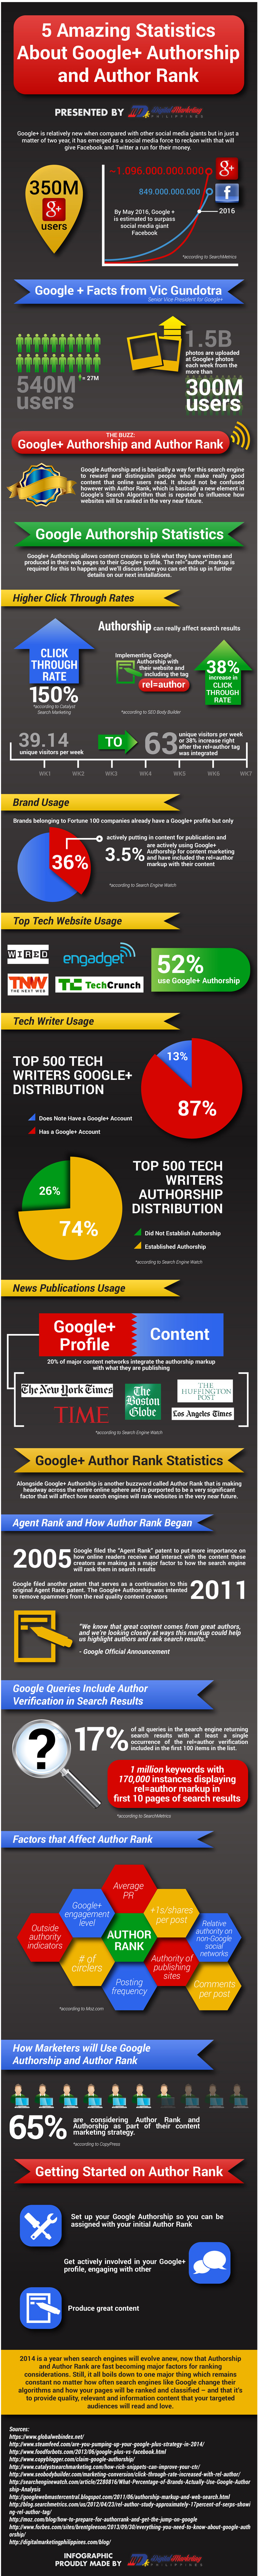 infographie-authorship-authorrank